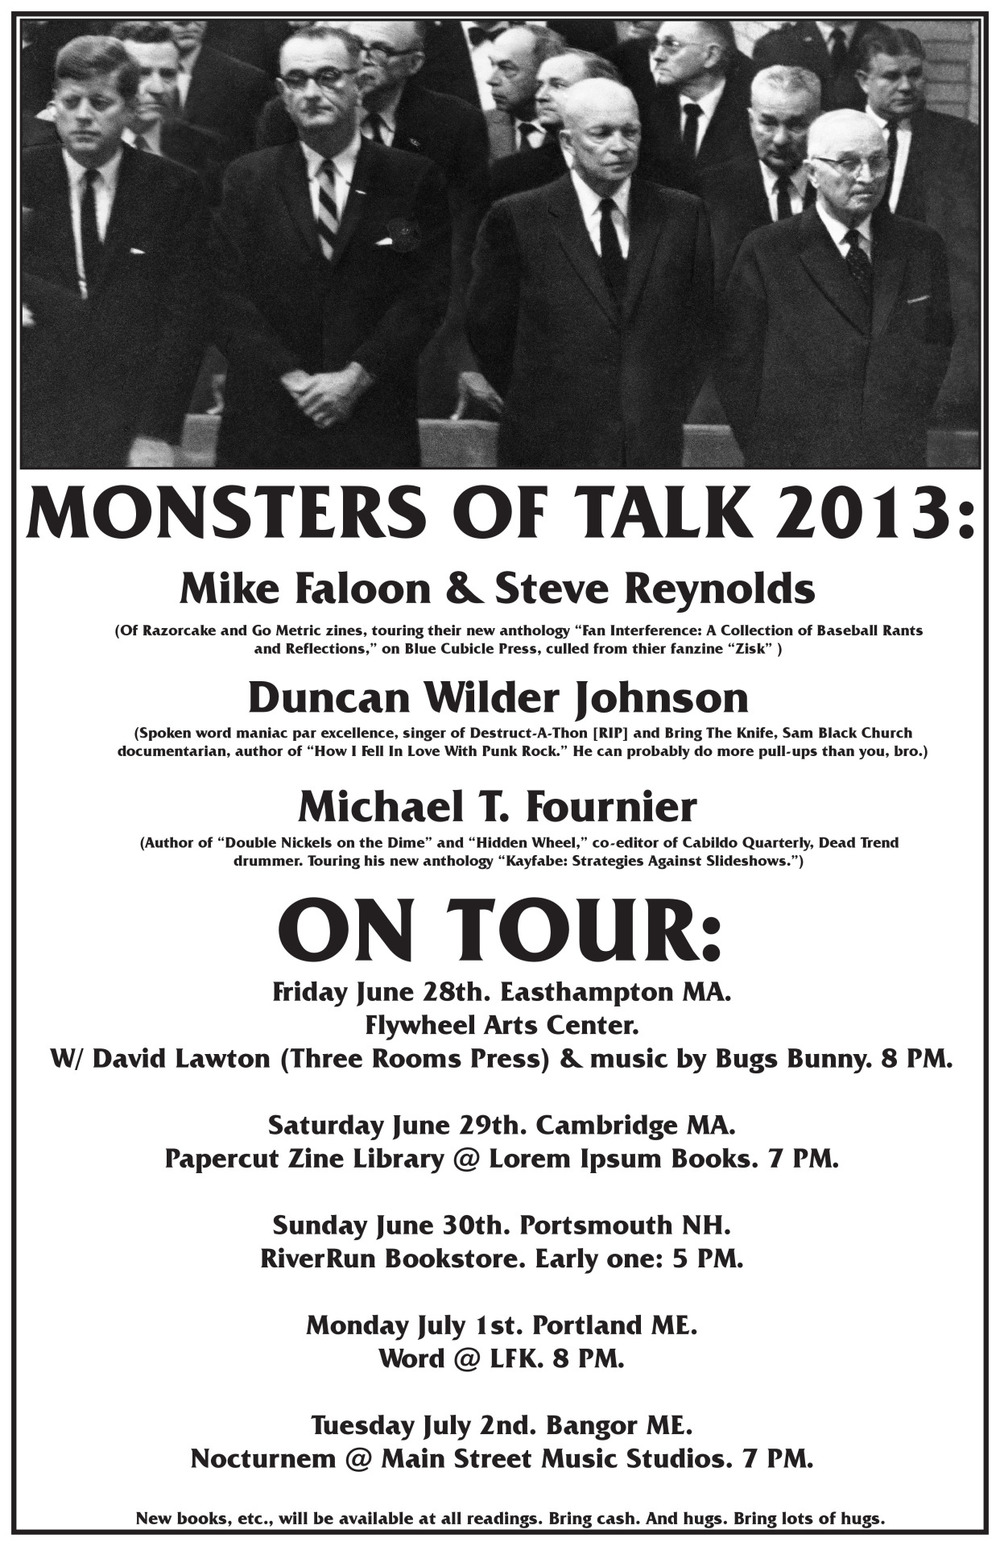 Monsters of Talk 2013 zine tour, with Mike Faloon & Steve Reynolds, and Duncan Wilder Johnson.